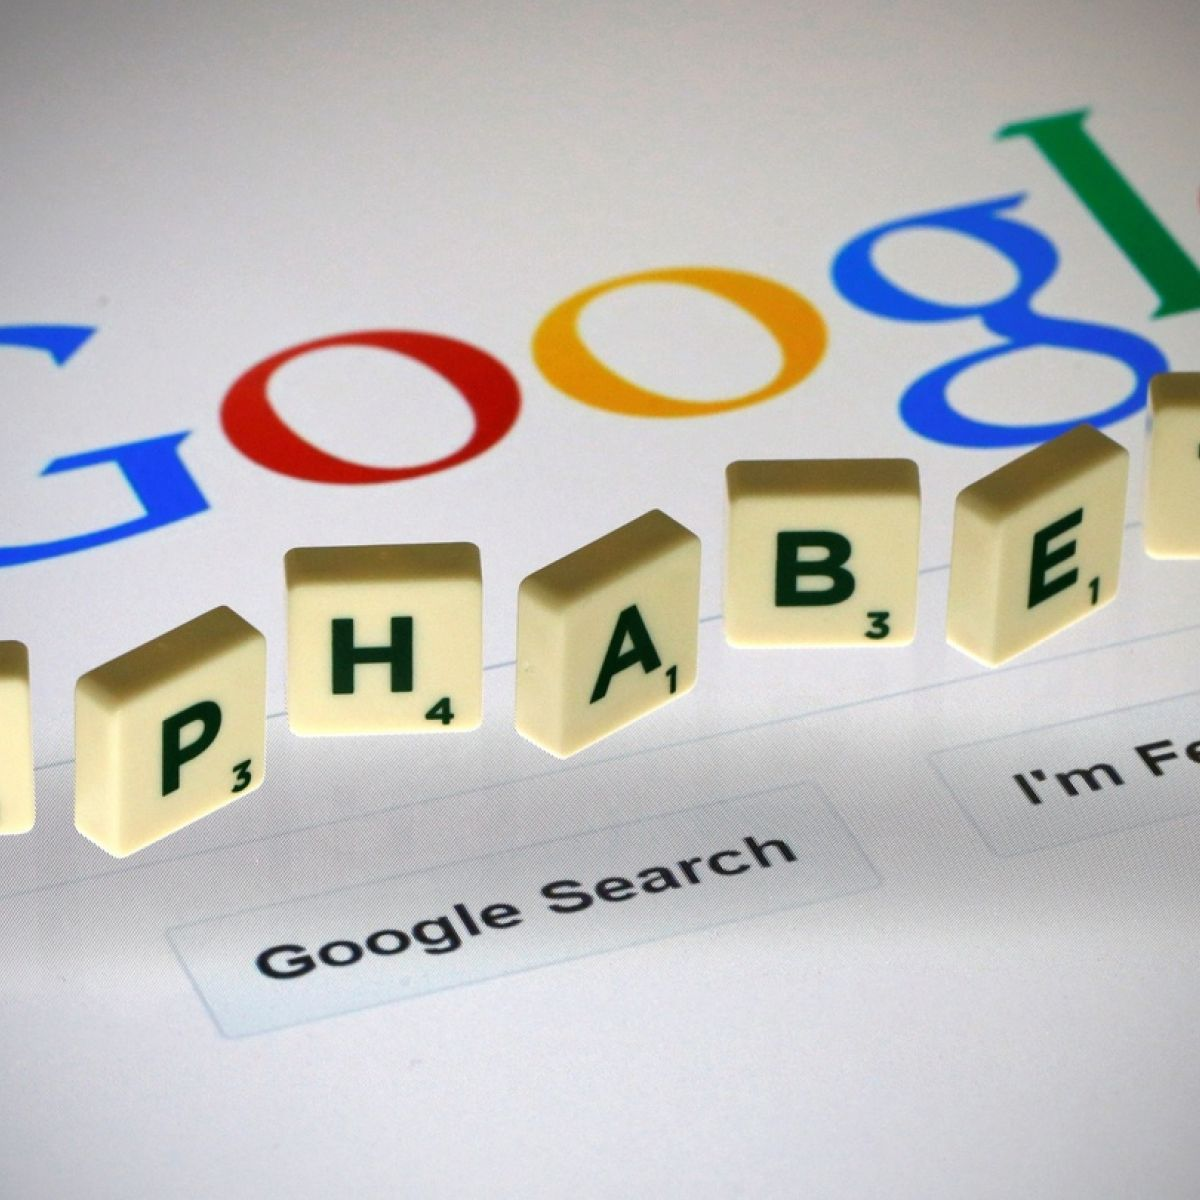 Shares of Google parent Alphabet could return to record levels